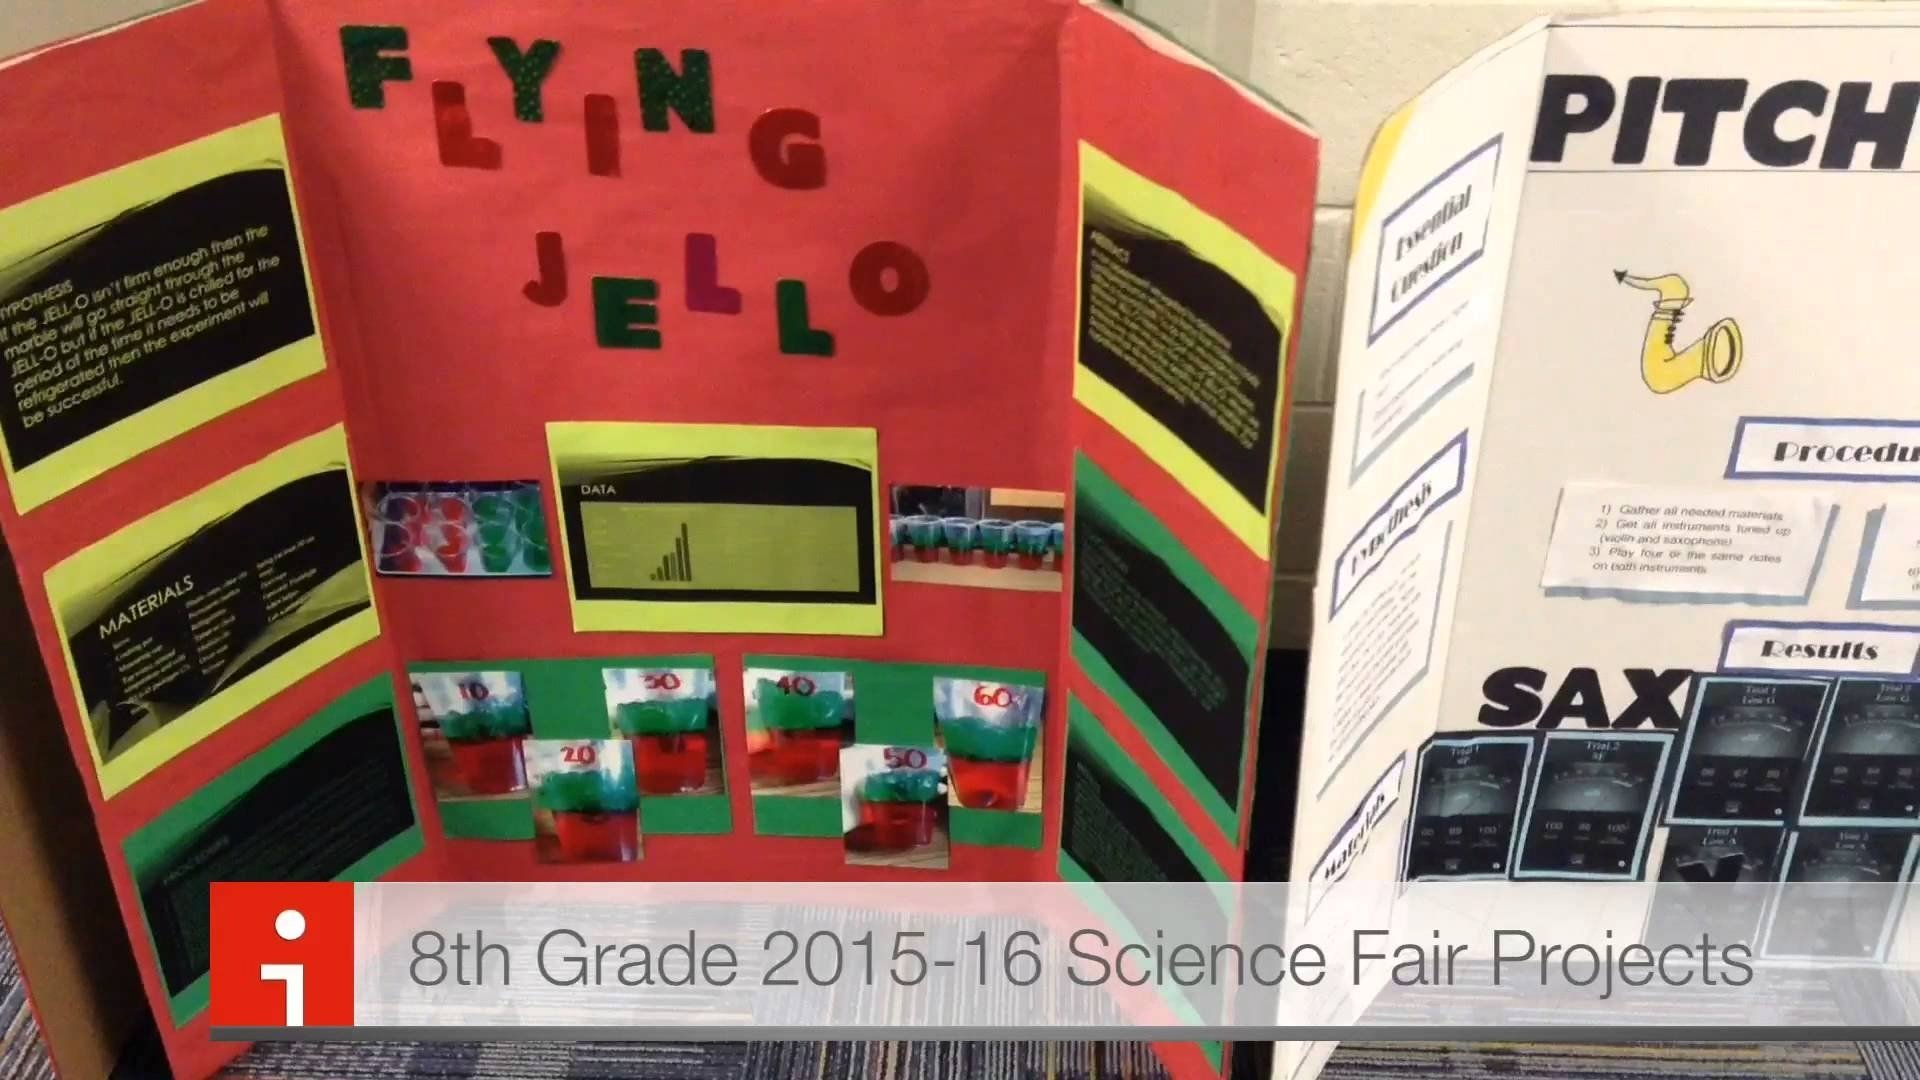 10 Most Recommended Science Fair Projects For 8Th Graders Winning Ideas 2015 16 8th grade science fair projects youtube 6